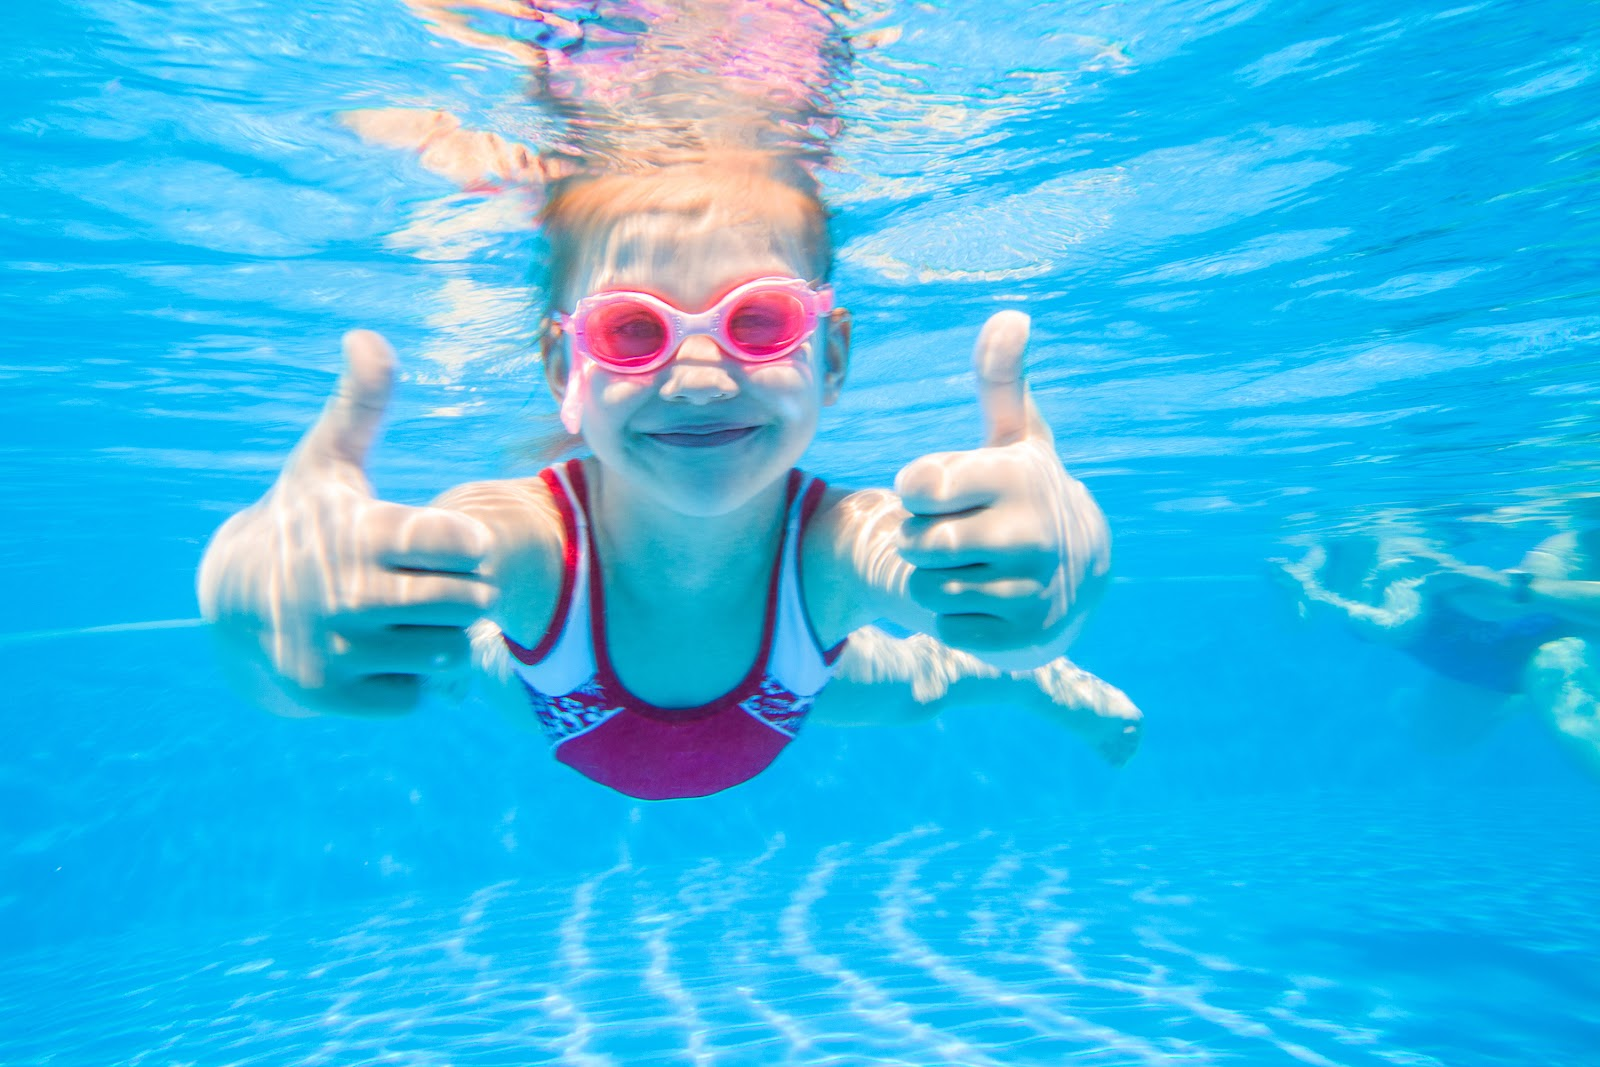 a young girl wearing pink googles giving two thumbs up underwater in a swimming pool